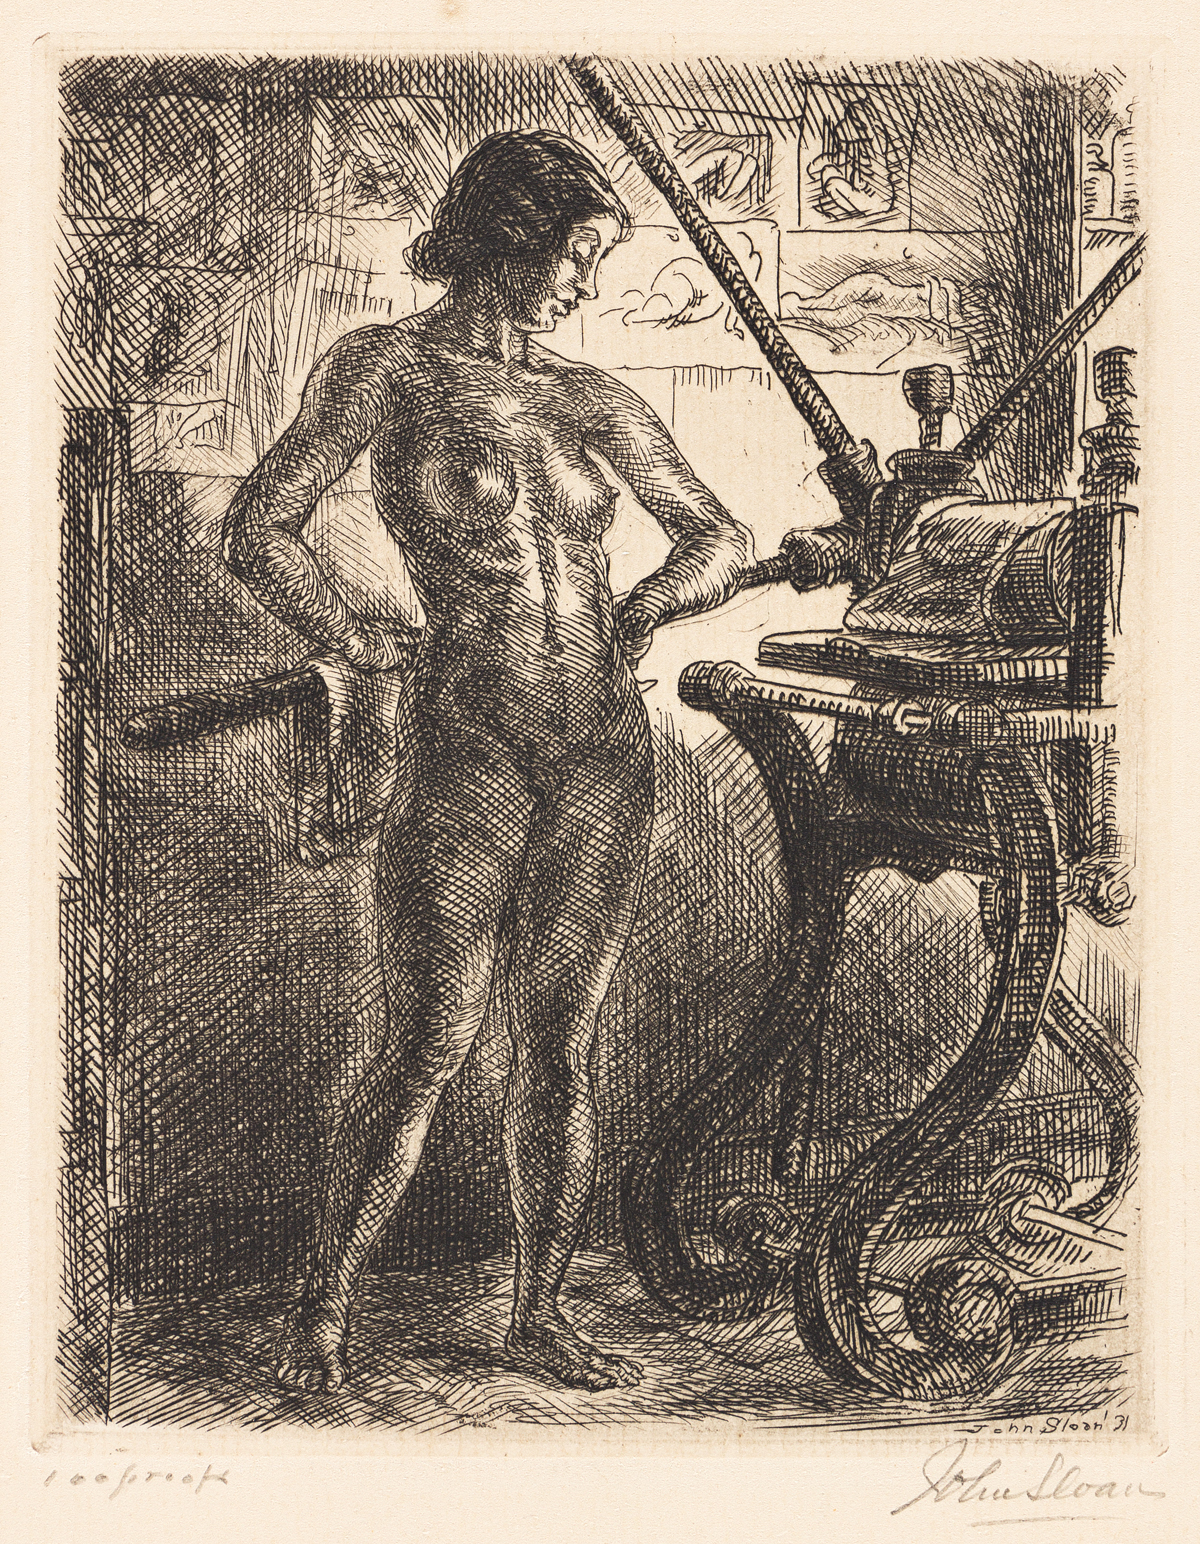 JOHN SLOAN (1871-1951) Nude and Etching Press.